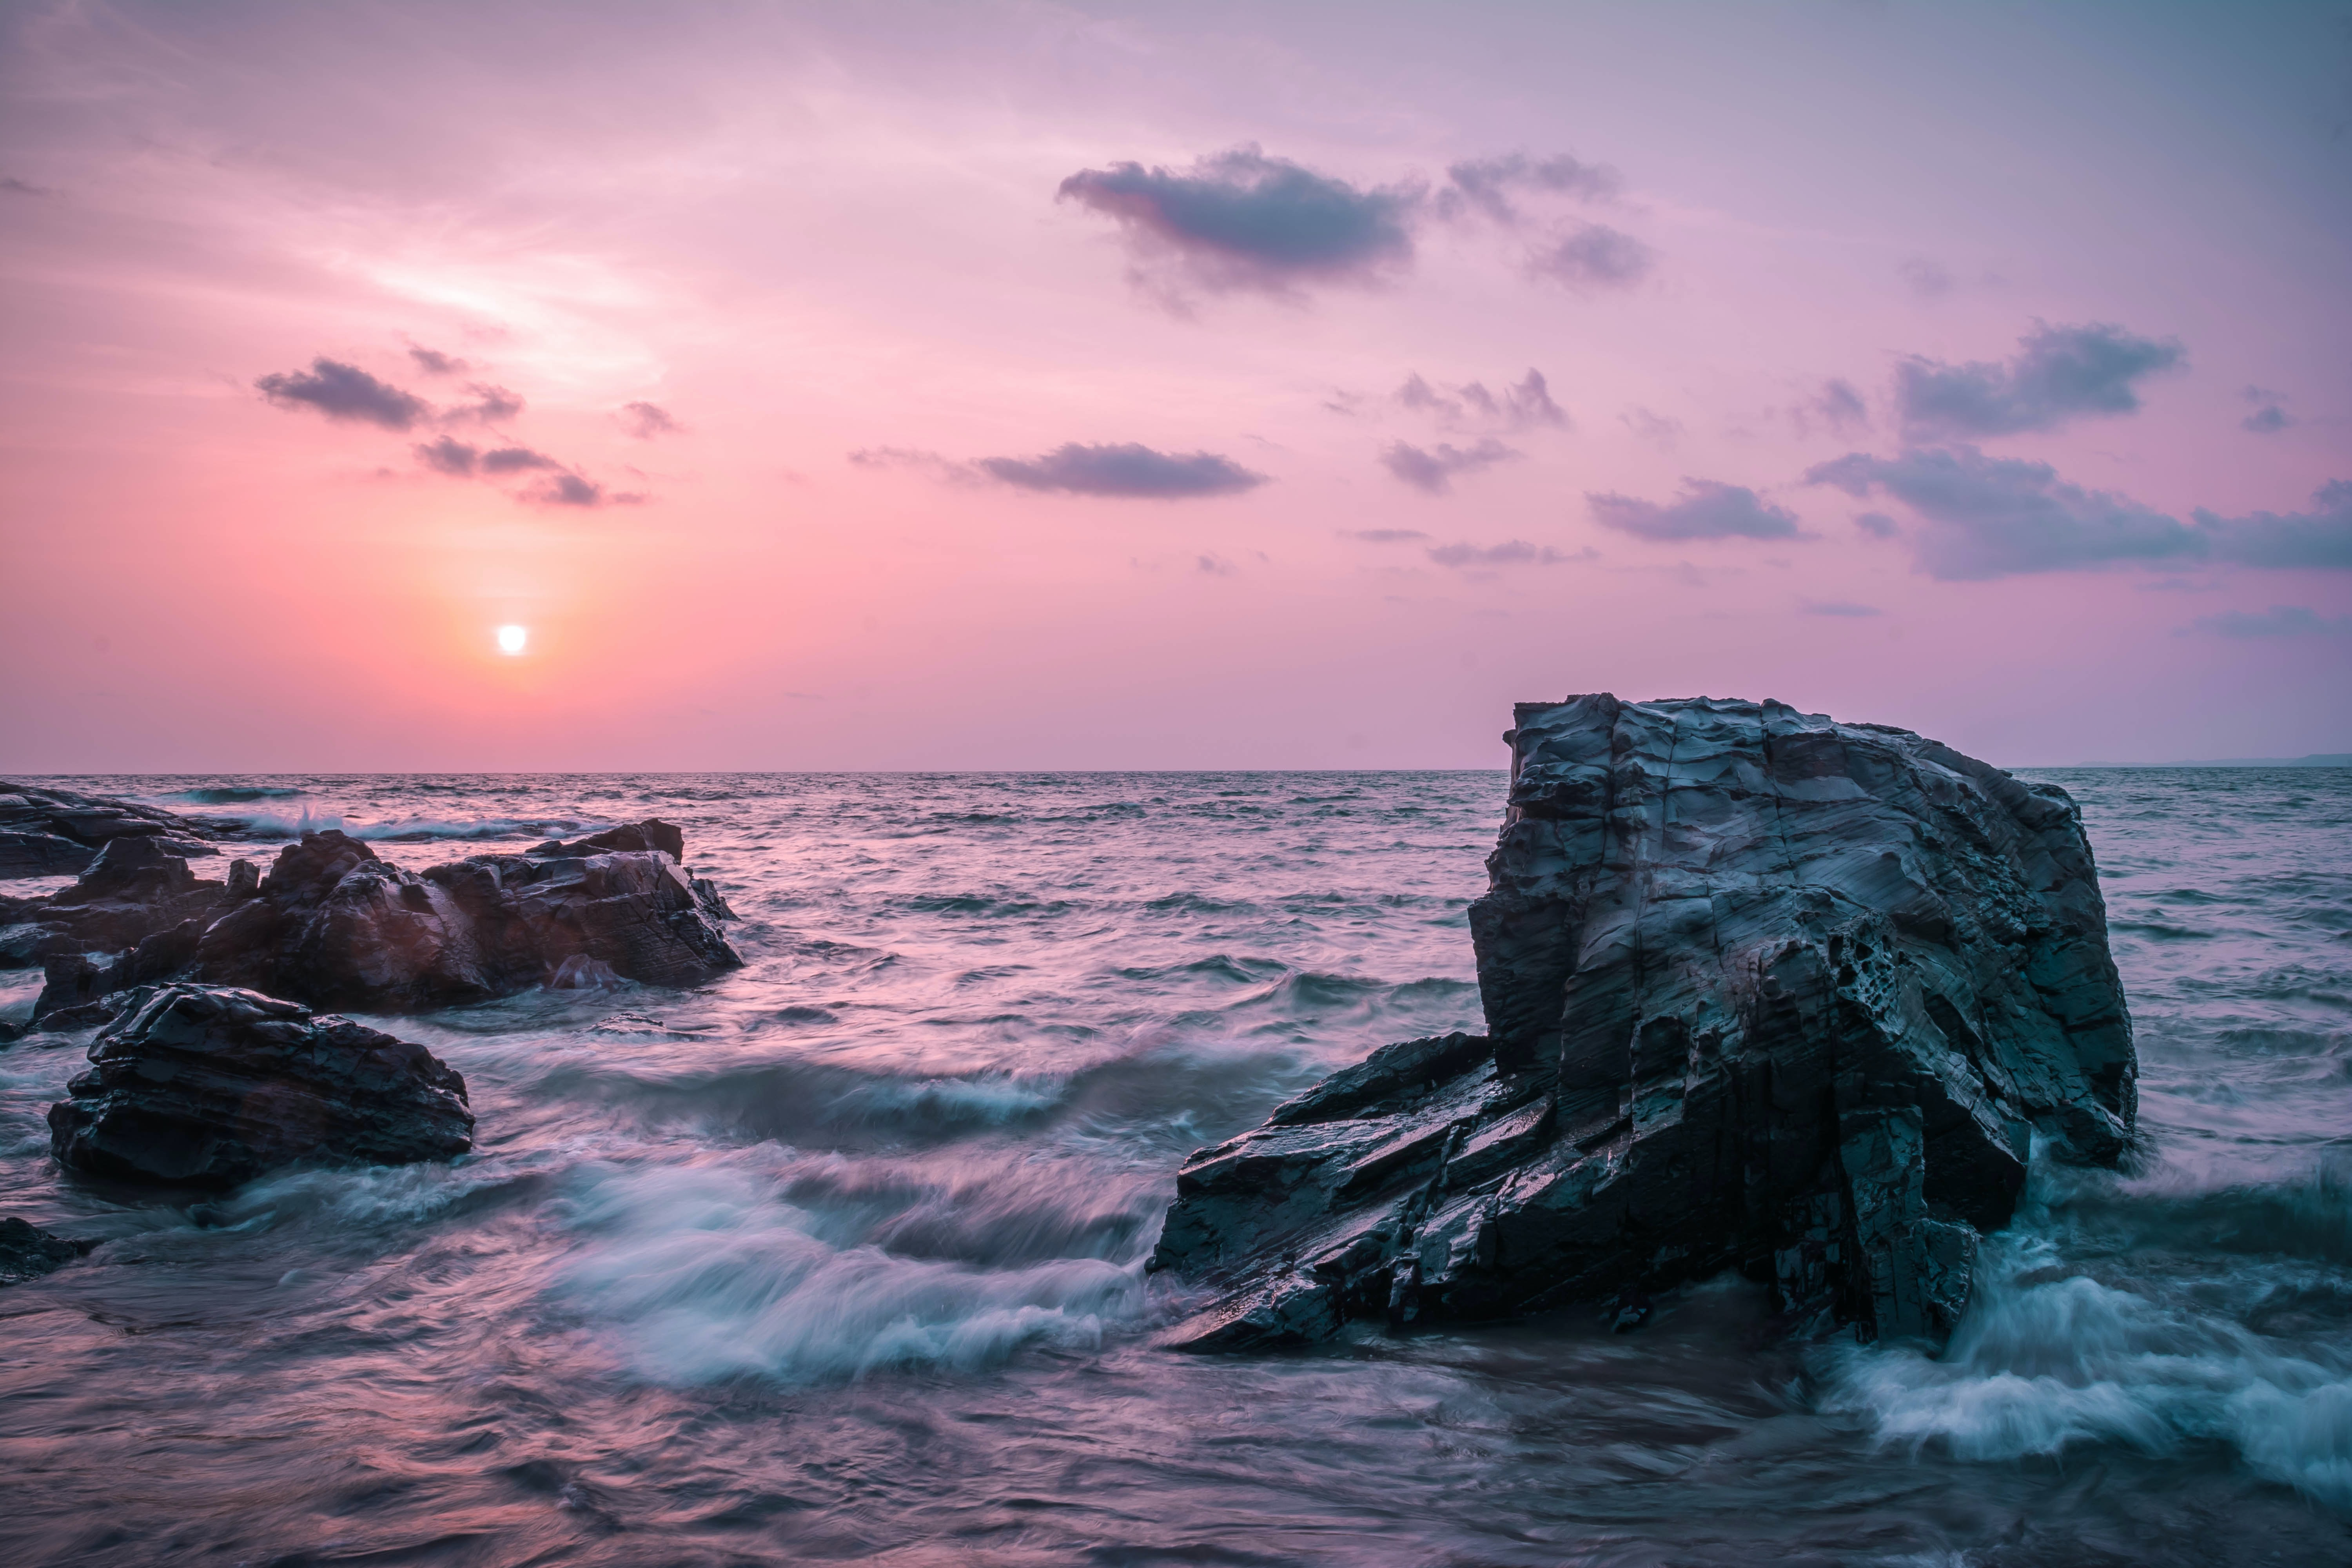 The sky is pink as the waves break on rocks at sunrise-or-sunset in Goa